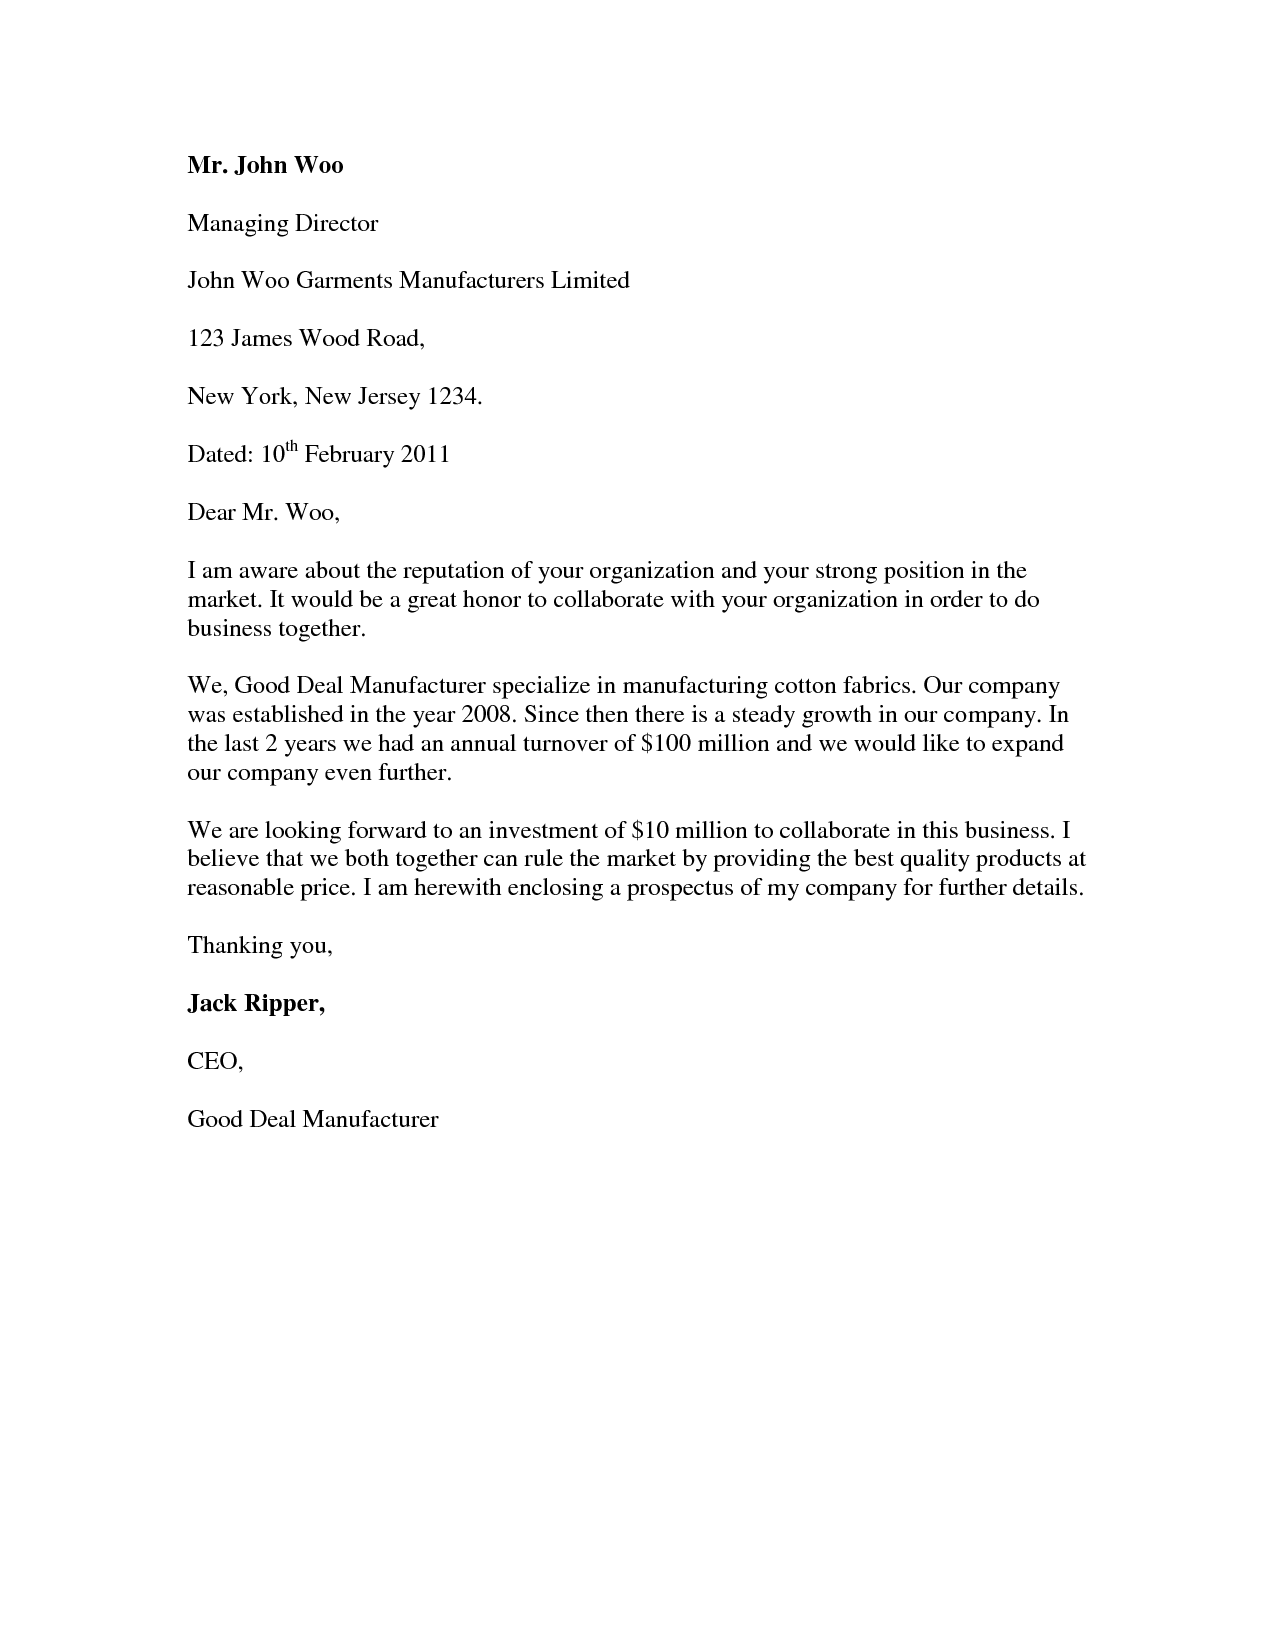 Security Clerk Cover Letter Covering Letter Example Standard Cover Letter With Cvsimple Cover